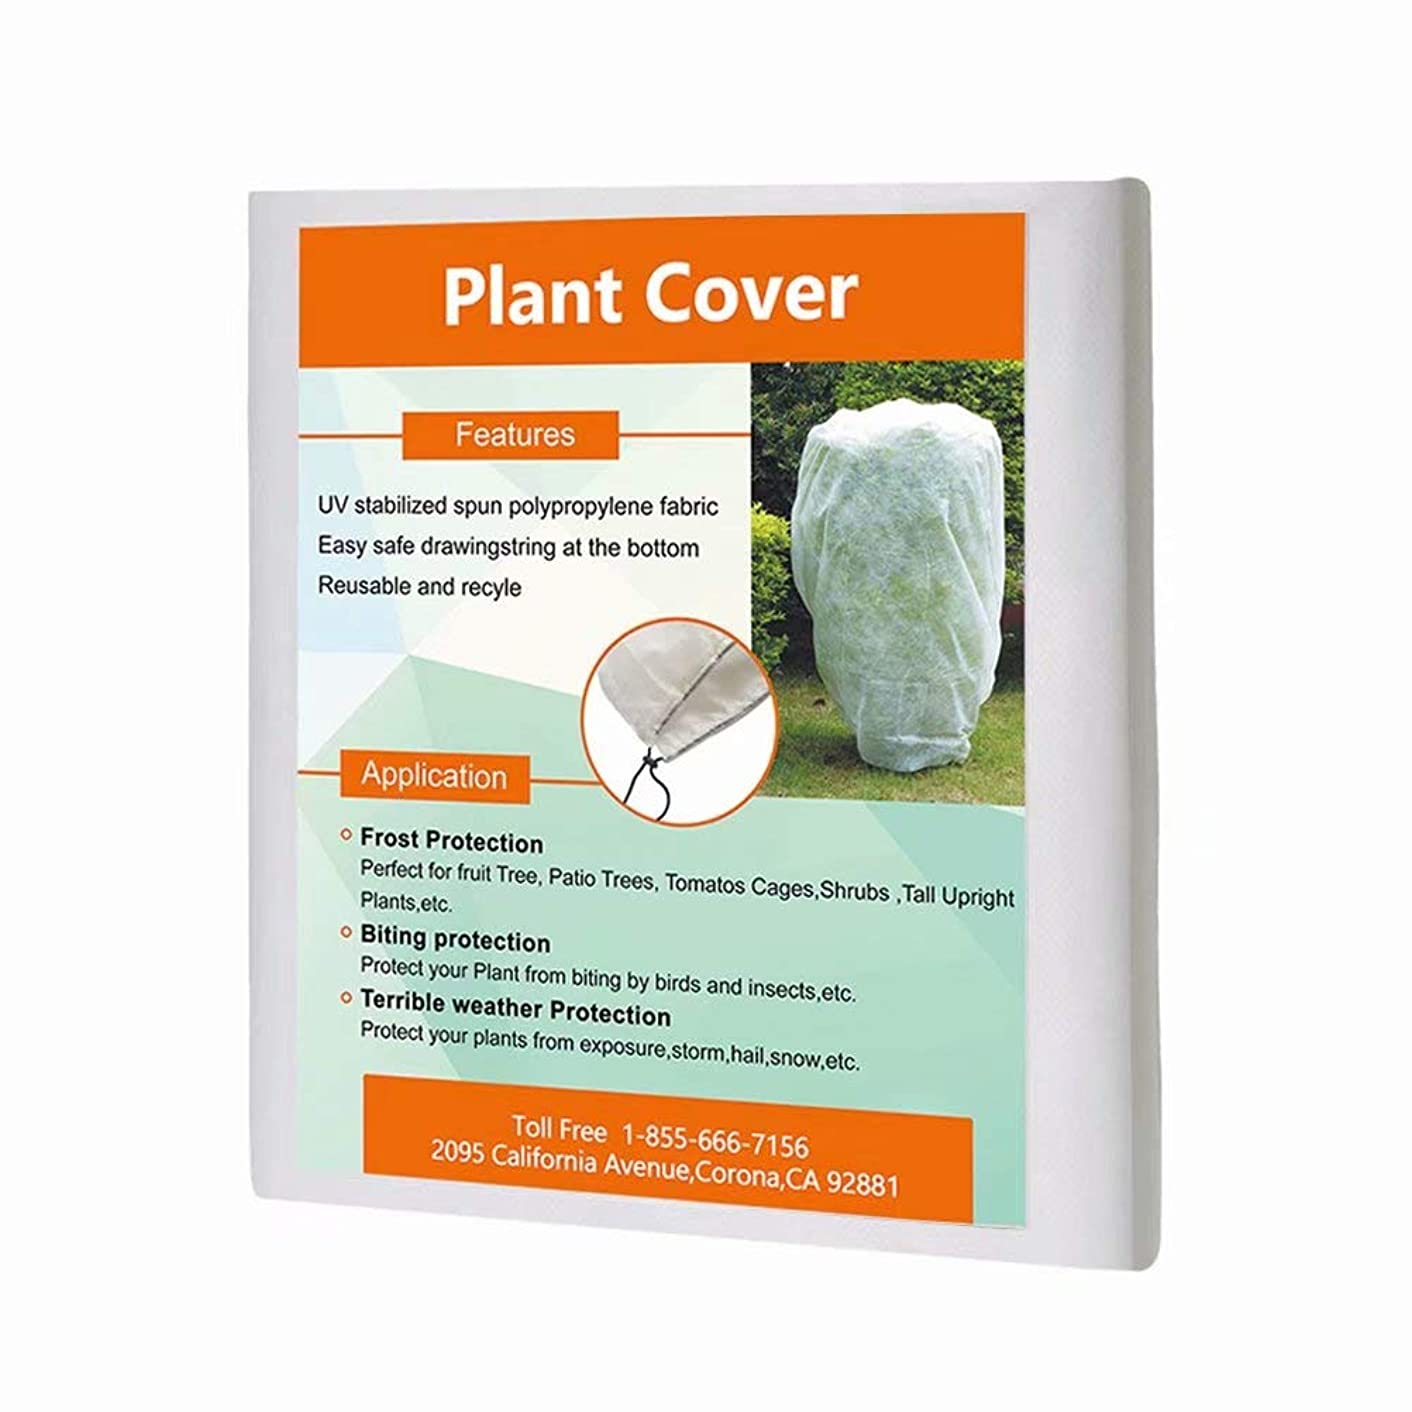 Agfabric Square Plant Cover for Freeze Protection - 1.5 oz 96''x96'' Shrub Jacket,Rectangle Plant Cover with Zipper for Bug/Insect Barrier